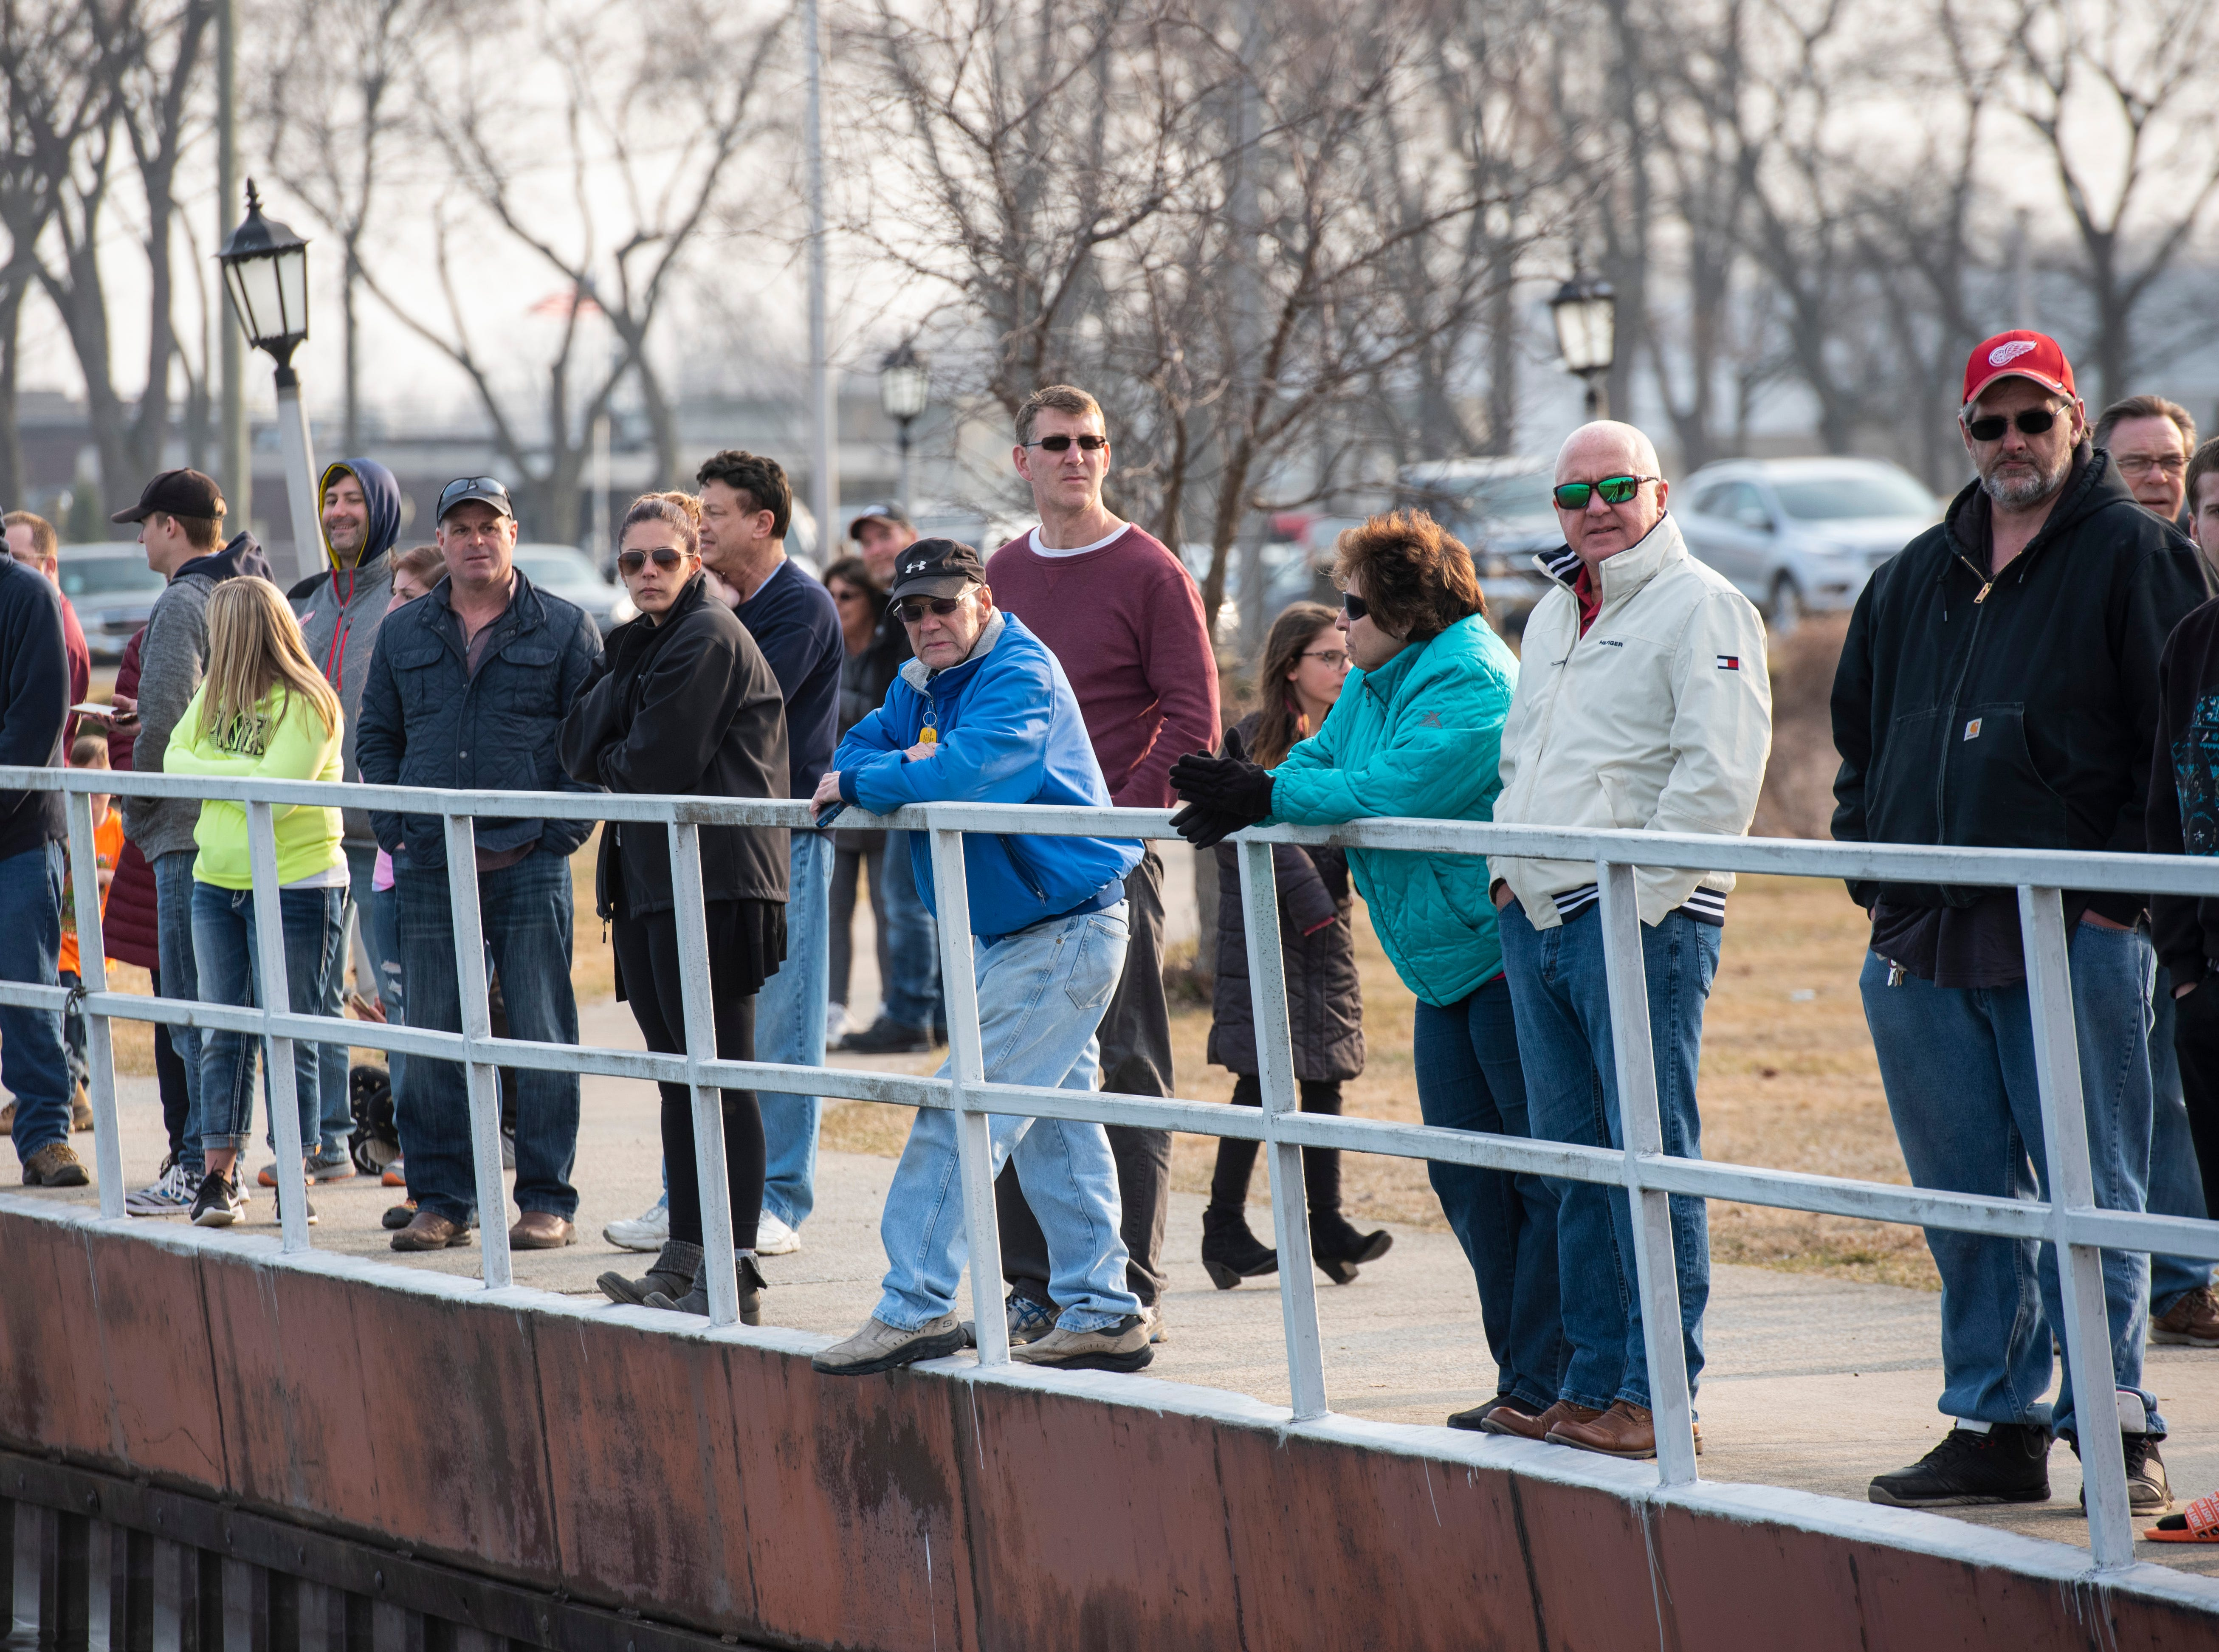 Spectators watch from a nearby boardwalk as crews work to remove a car from the St. Clair River near Junction Buoy in Marysville Saturday, April 6, 2019. The driver went to adjust the parking of the vehicle, and it rolled into the river. The vehicle floated down the river a ways before it and the driver went under. The driver later died.